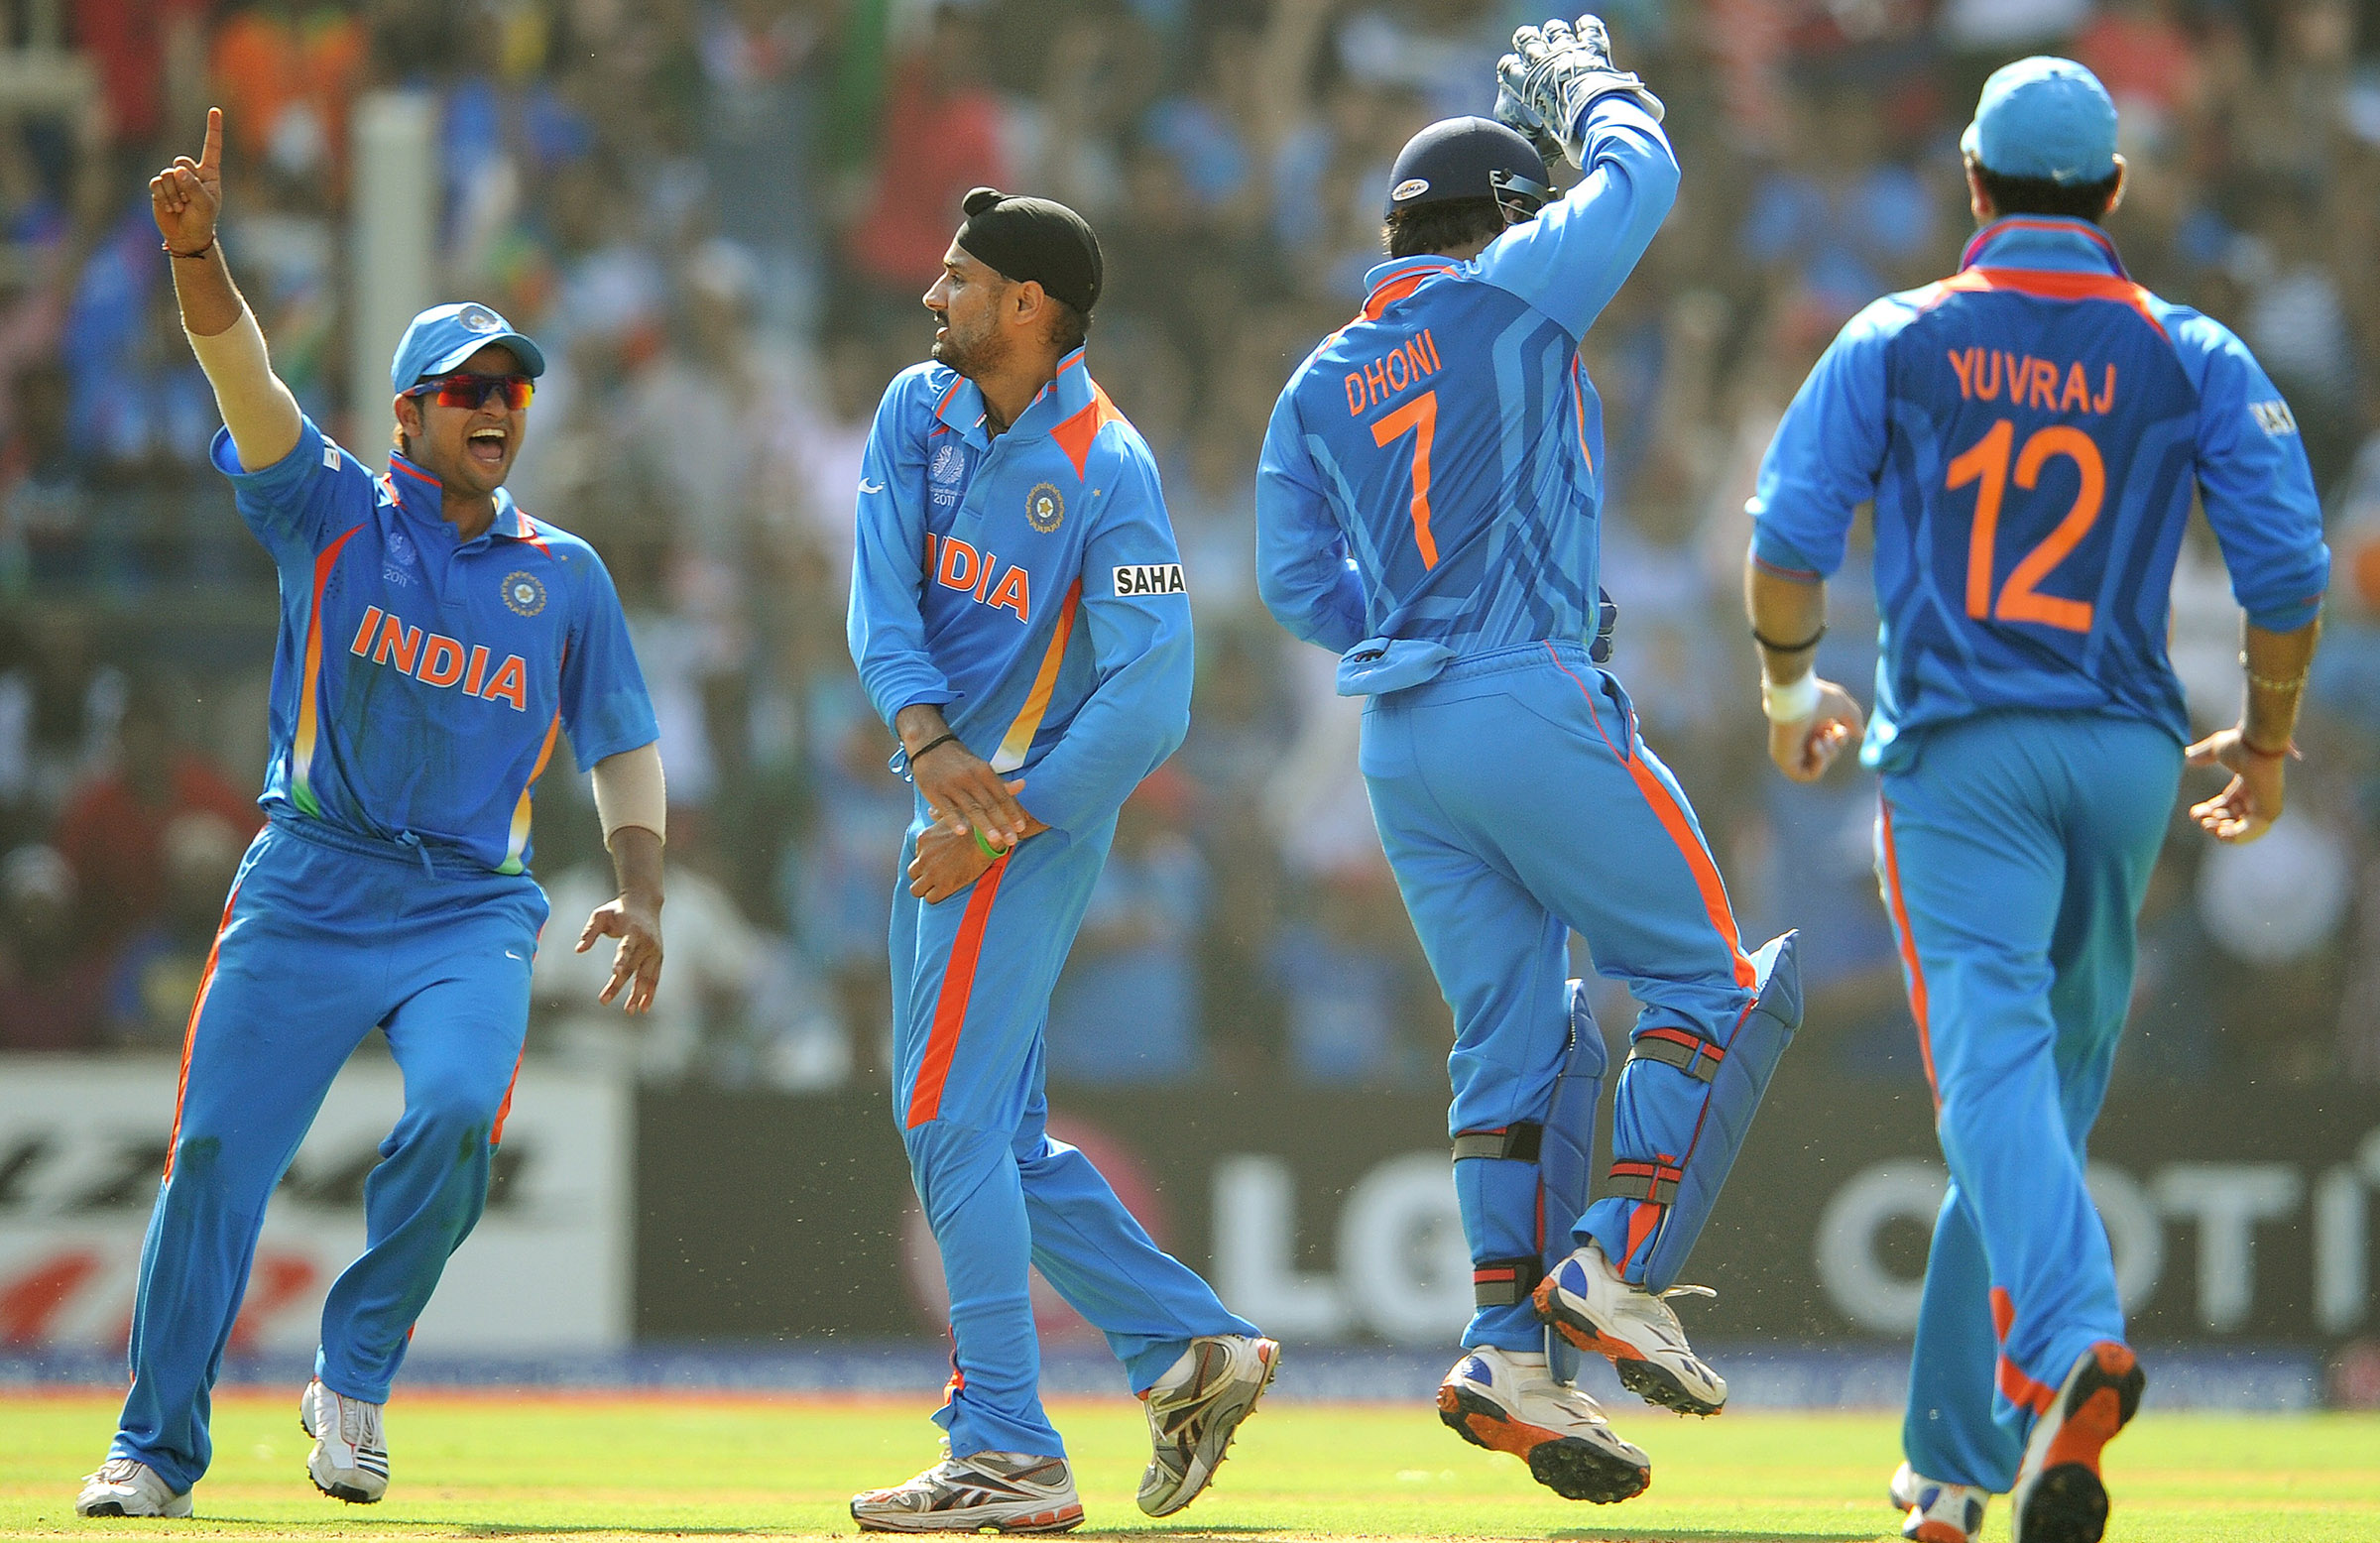 Indian Squad announced for Sri Lanka ODIs and T20I